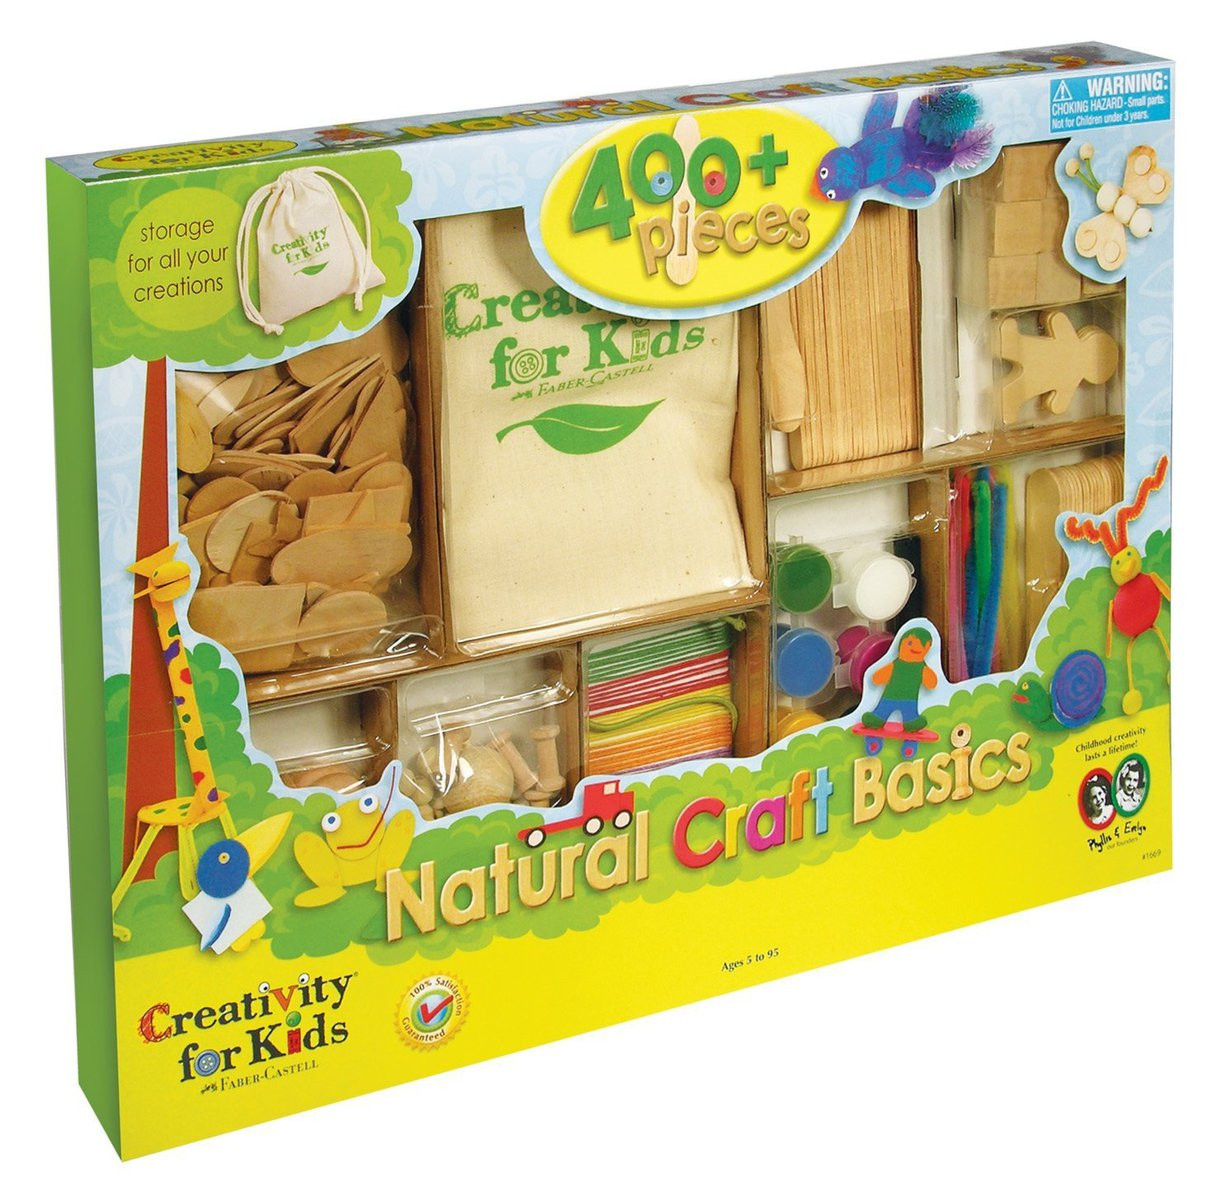 Craft Kit For Kids  Creativity For Kids Review A Mom s Take